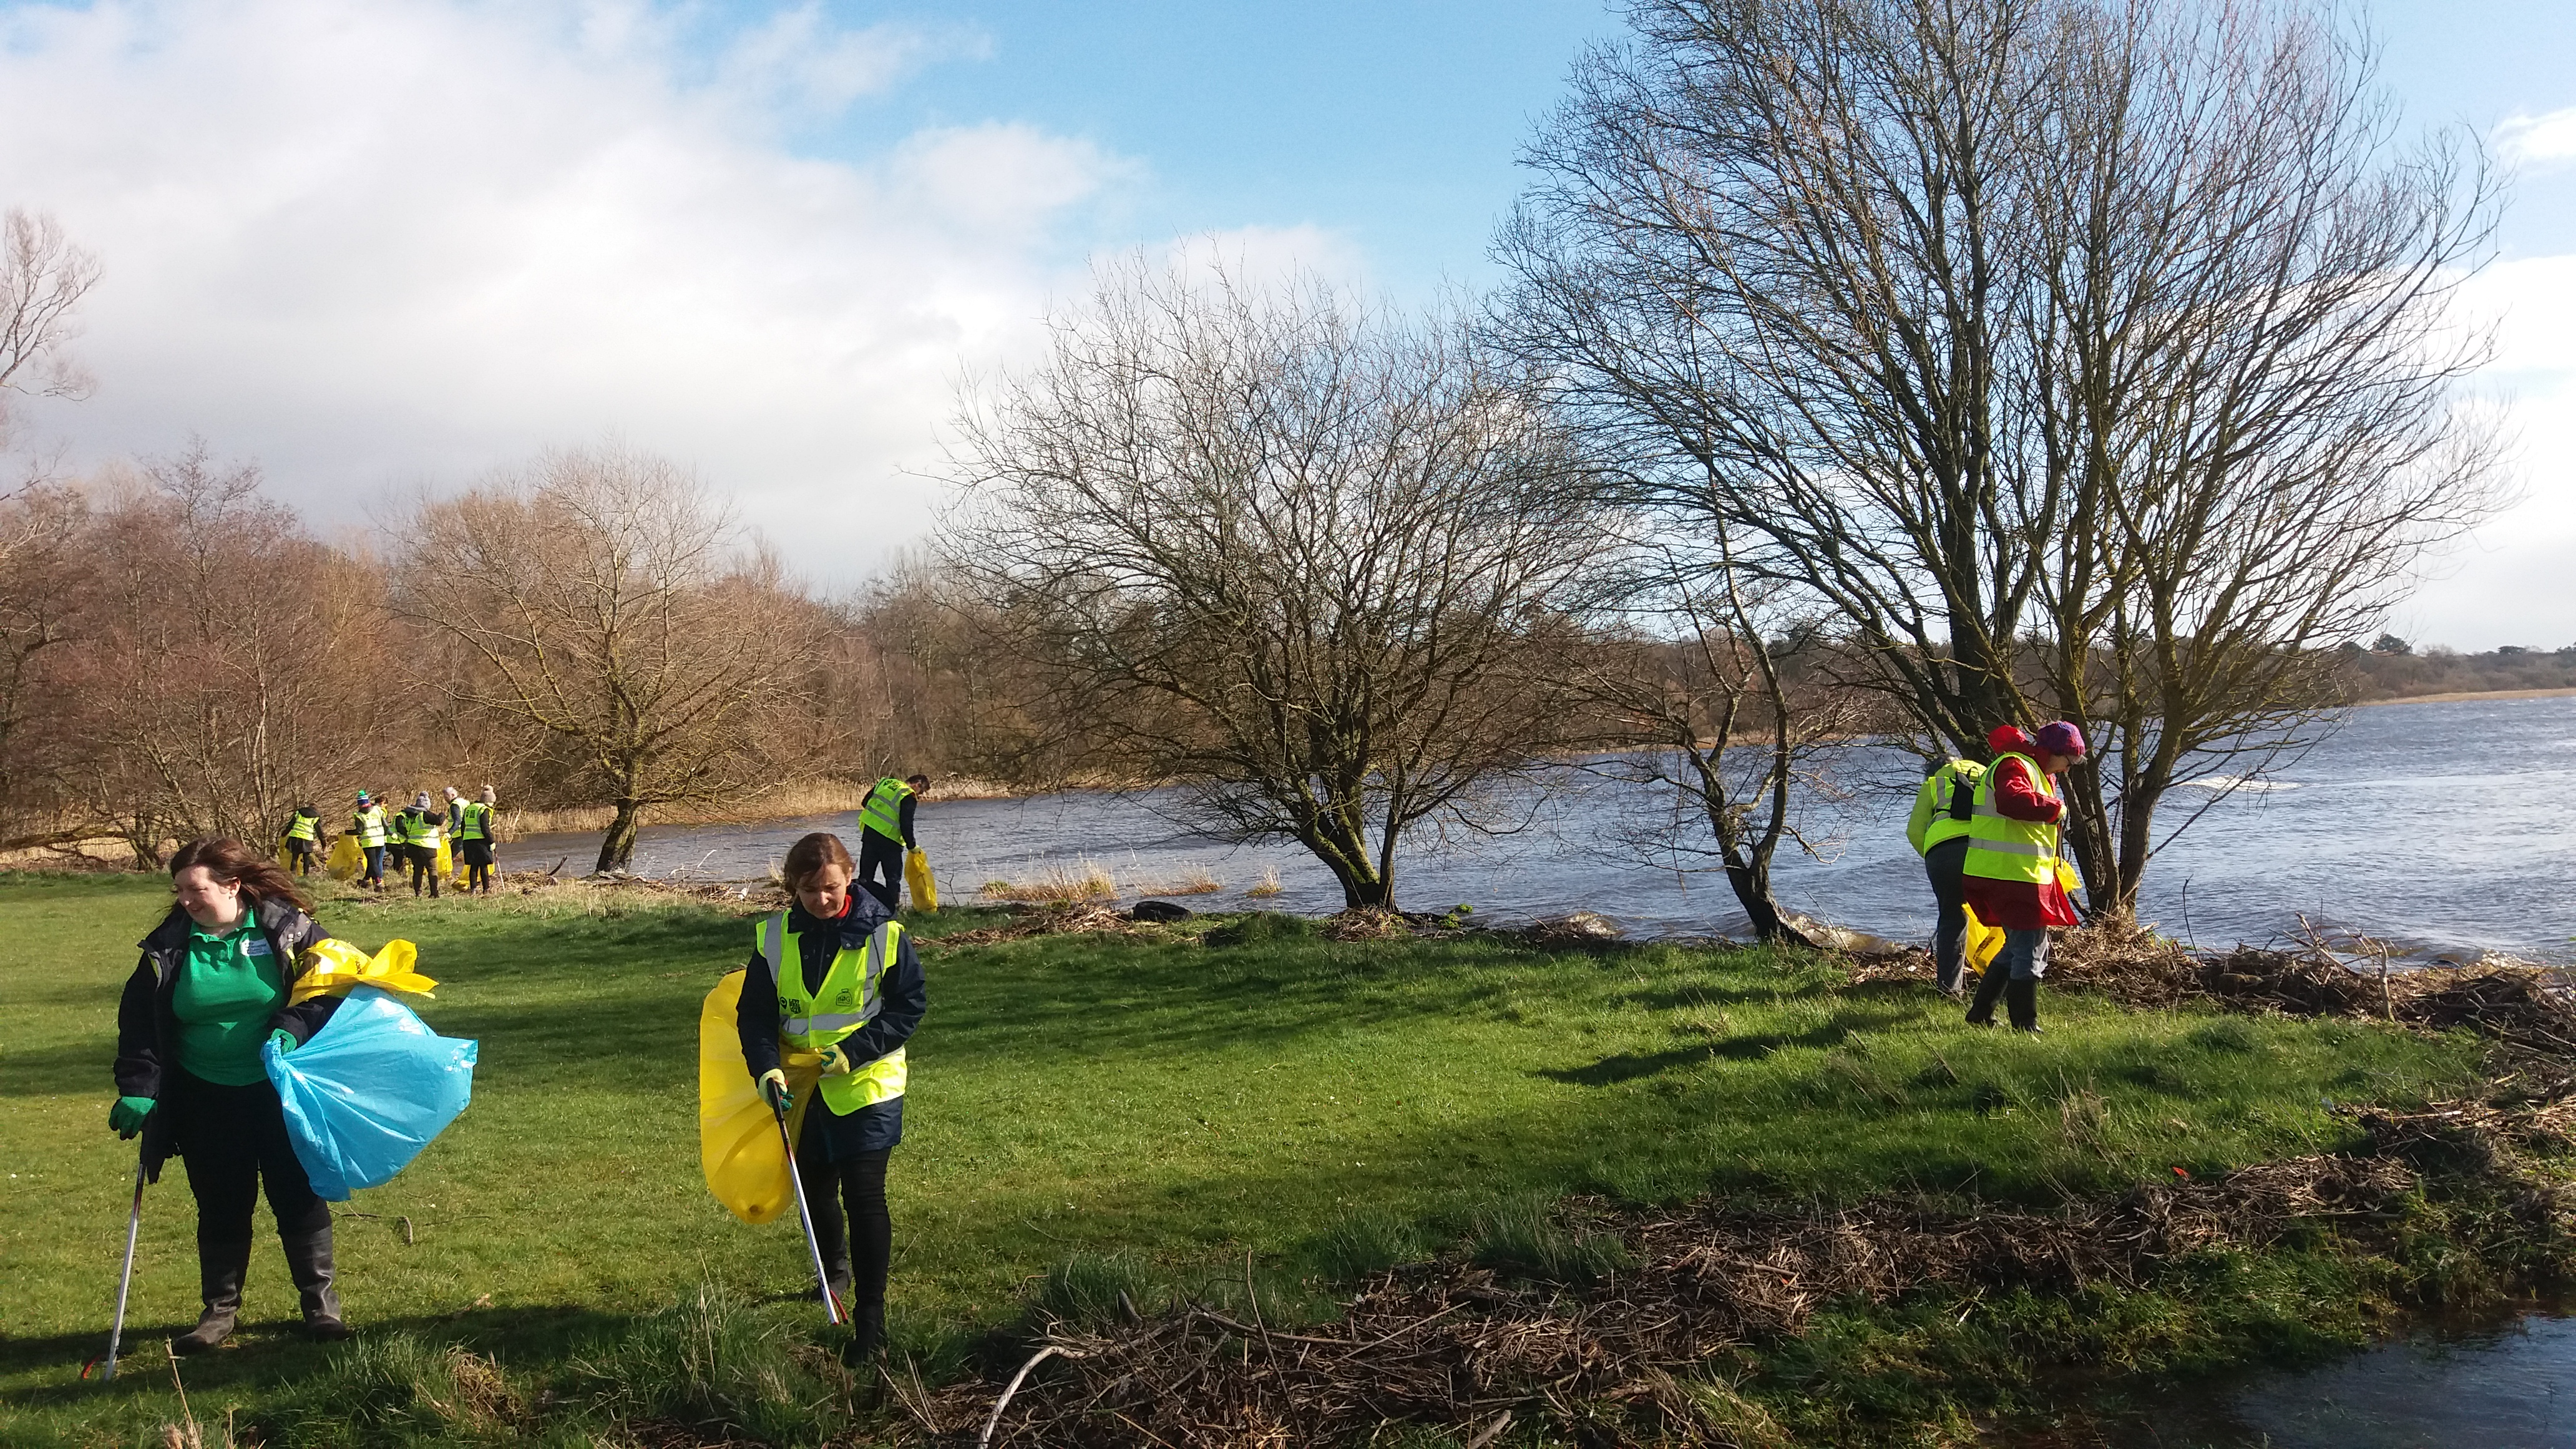 Lough Neagh Litter Campaign